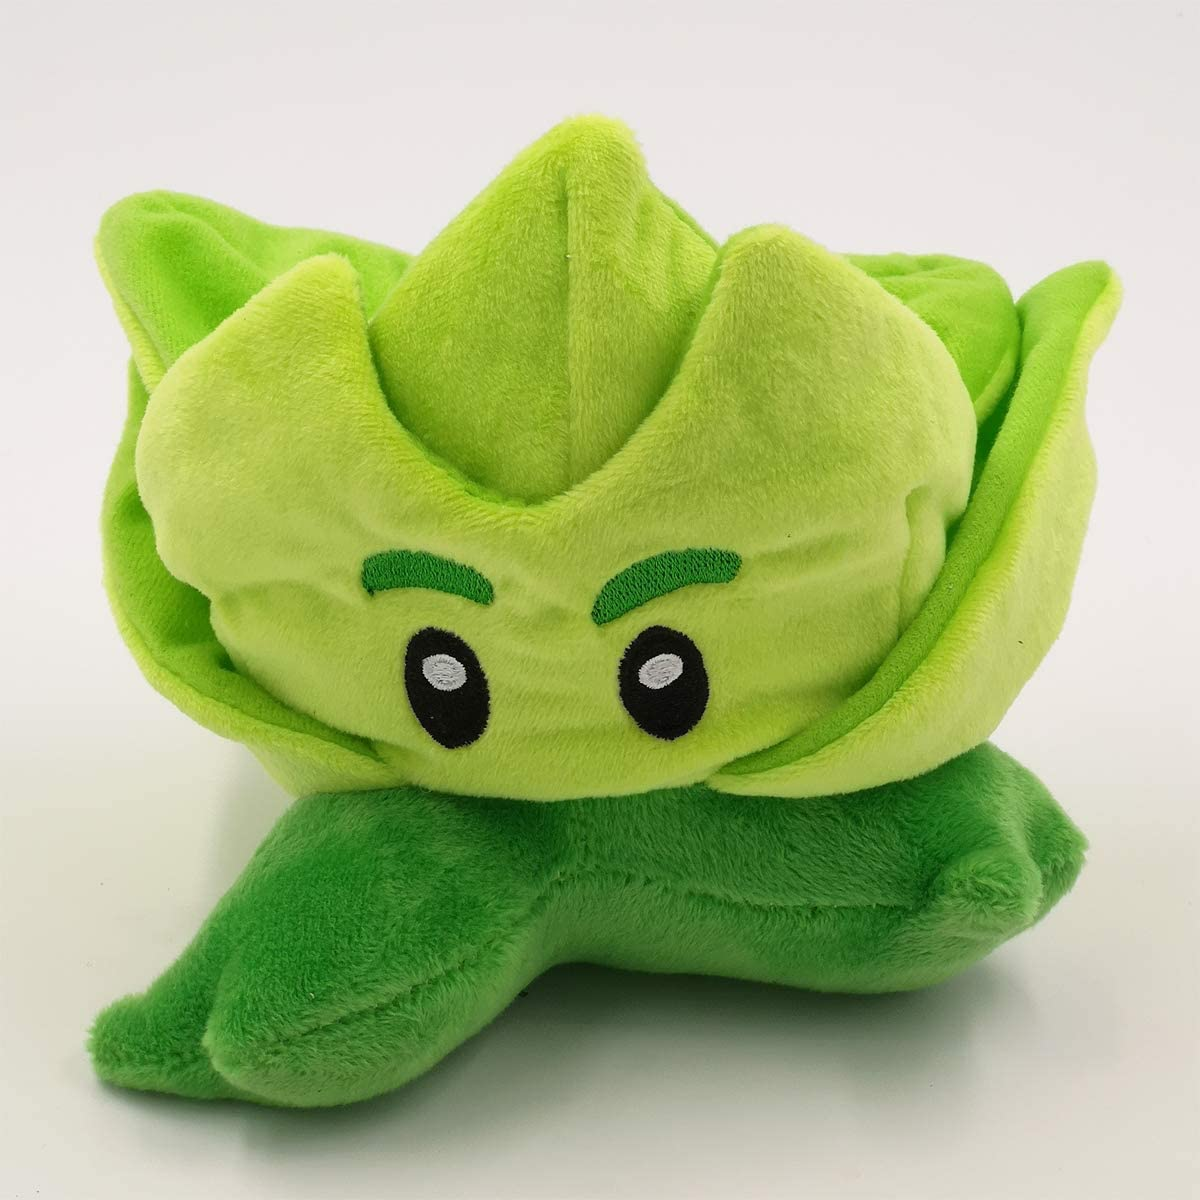 TavasHome Plants Manufacturer OFFicial shop Challenge the lowest price vs Zombies 2 PVZ Plush Figures Toy Baby S Staff